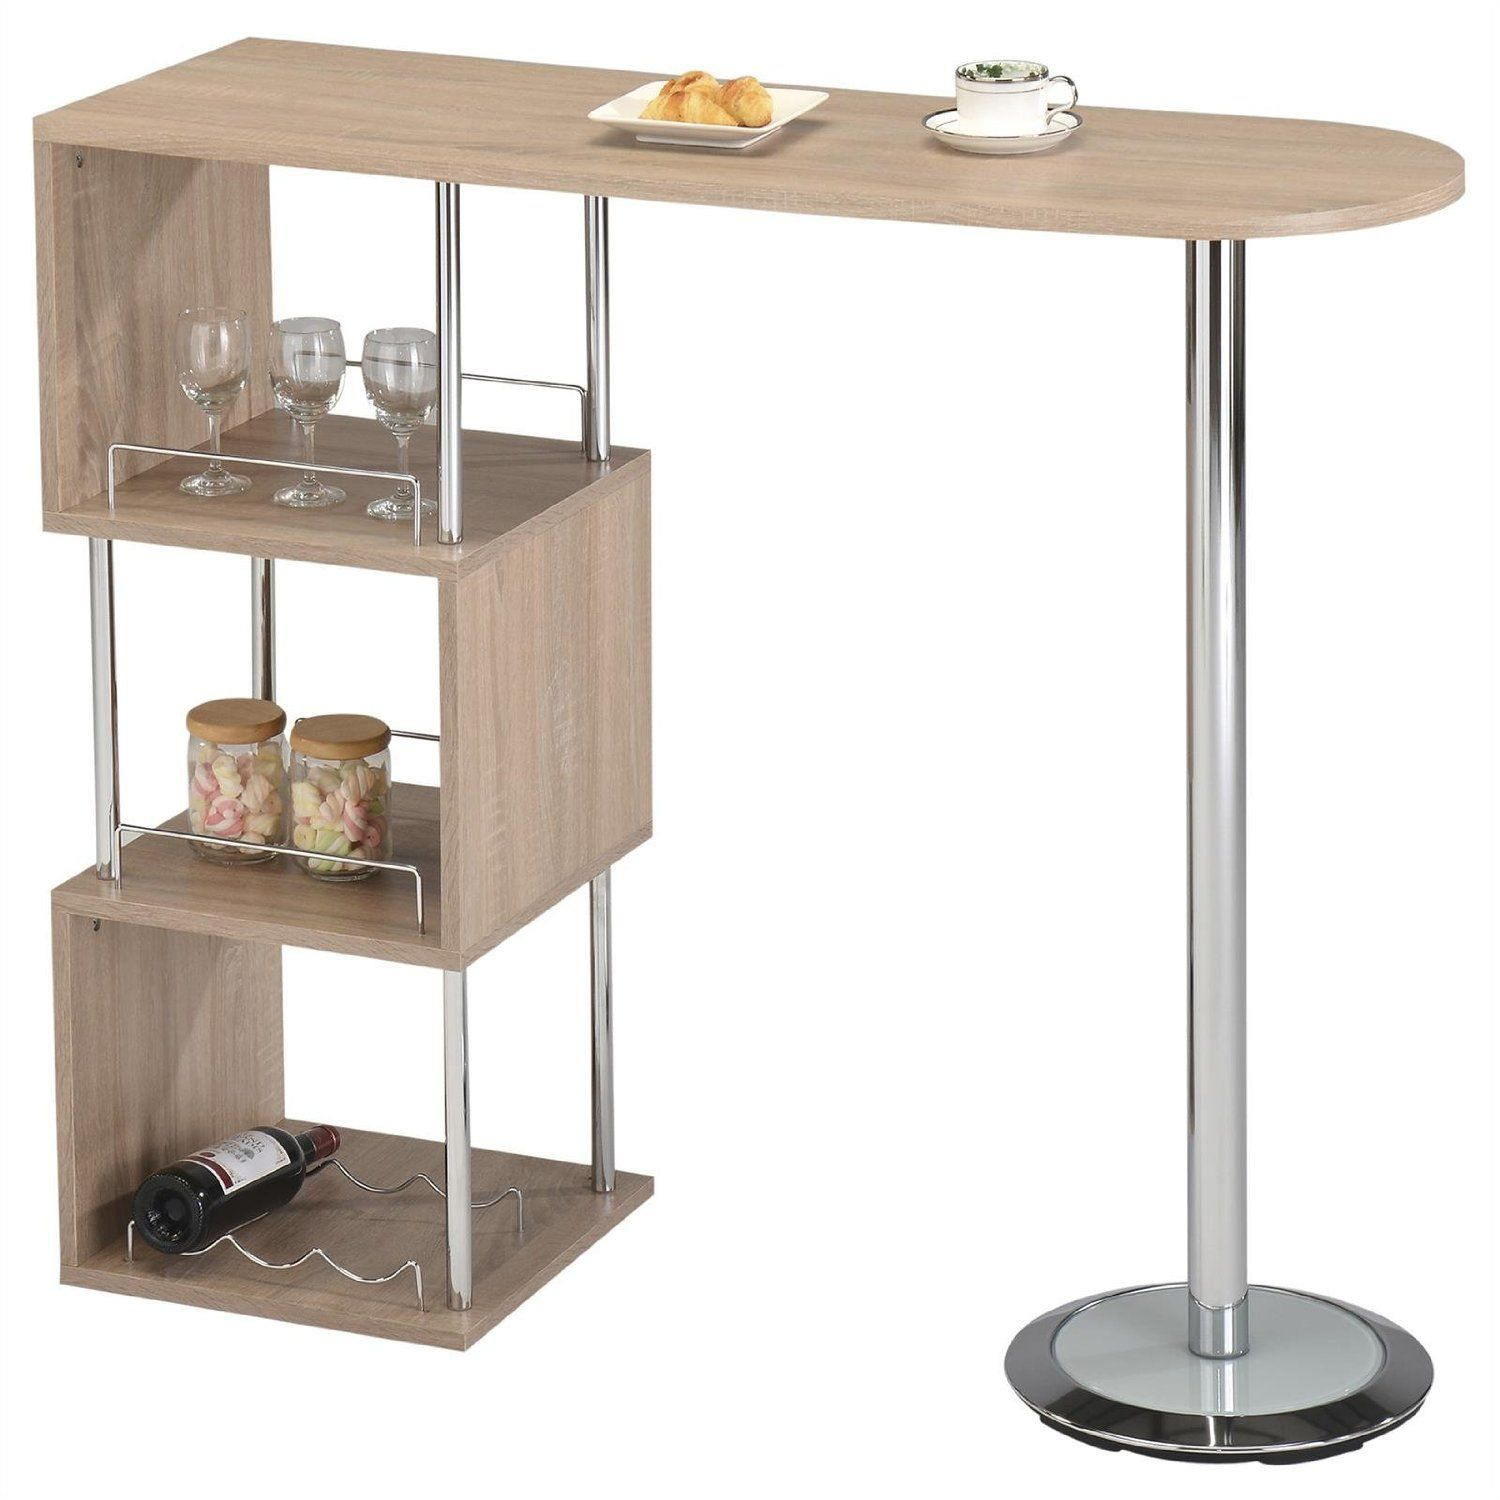 Table haute de bar mange debout comptoir vigando mdf d cor ch ne sonoma am - Table haute rangement ...